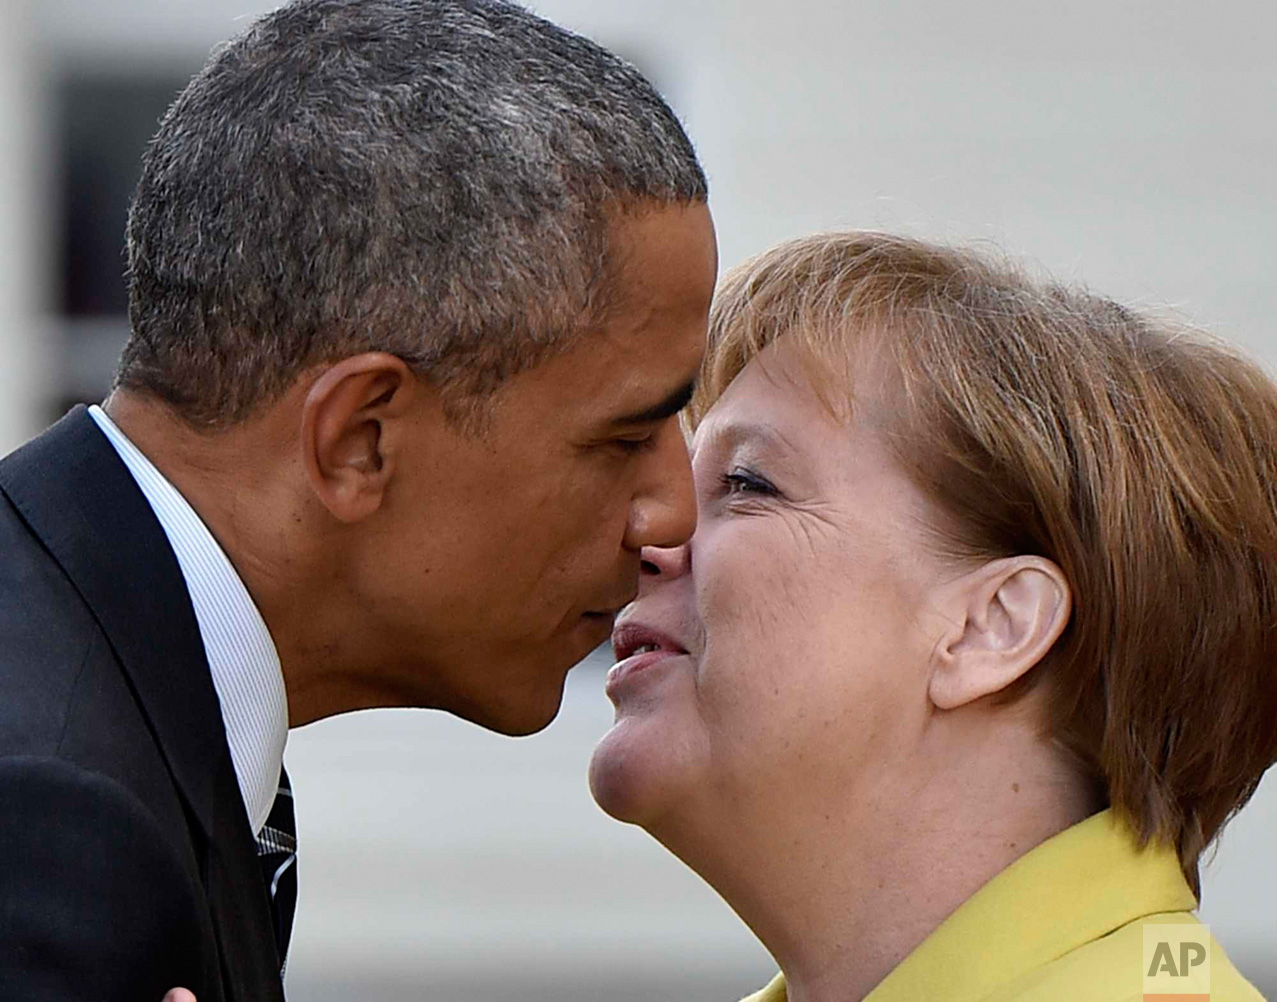 In this Sunday, April 24, 2016 photo, German Chancellor Angela Merkel, right, welcomes U.S. President Barack Obama at Herrenhaus Palace in Hannover, northern Germany. Obama is on a two-day official visit to Germany. (AP Photo/Martin Meissner)